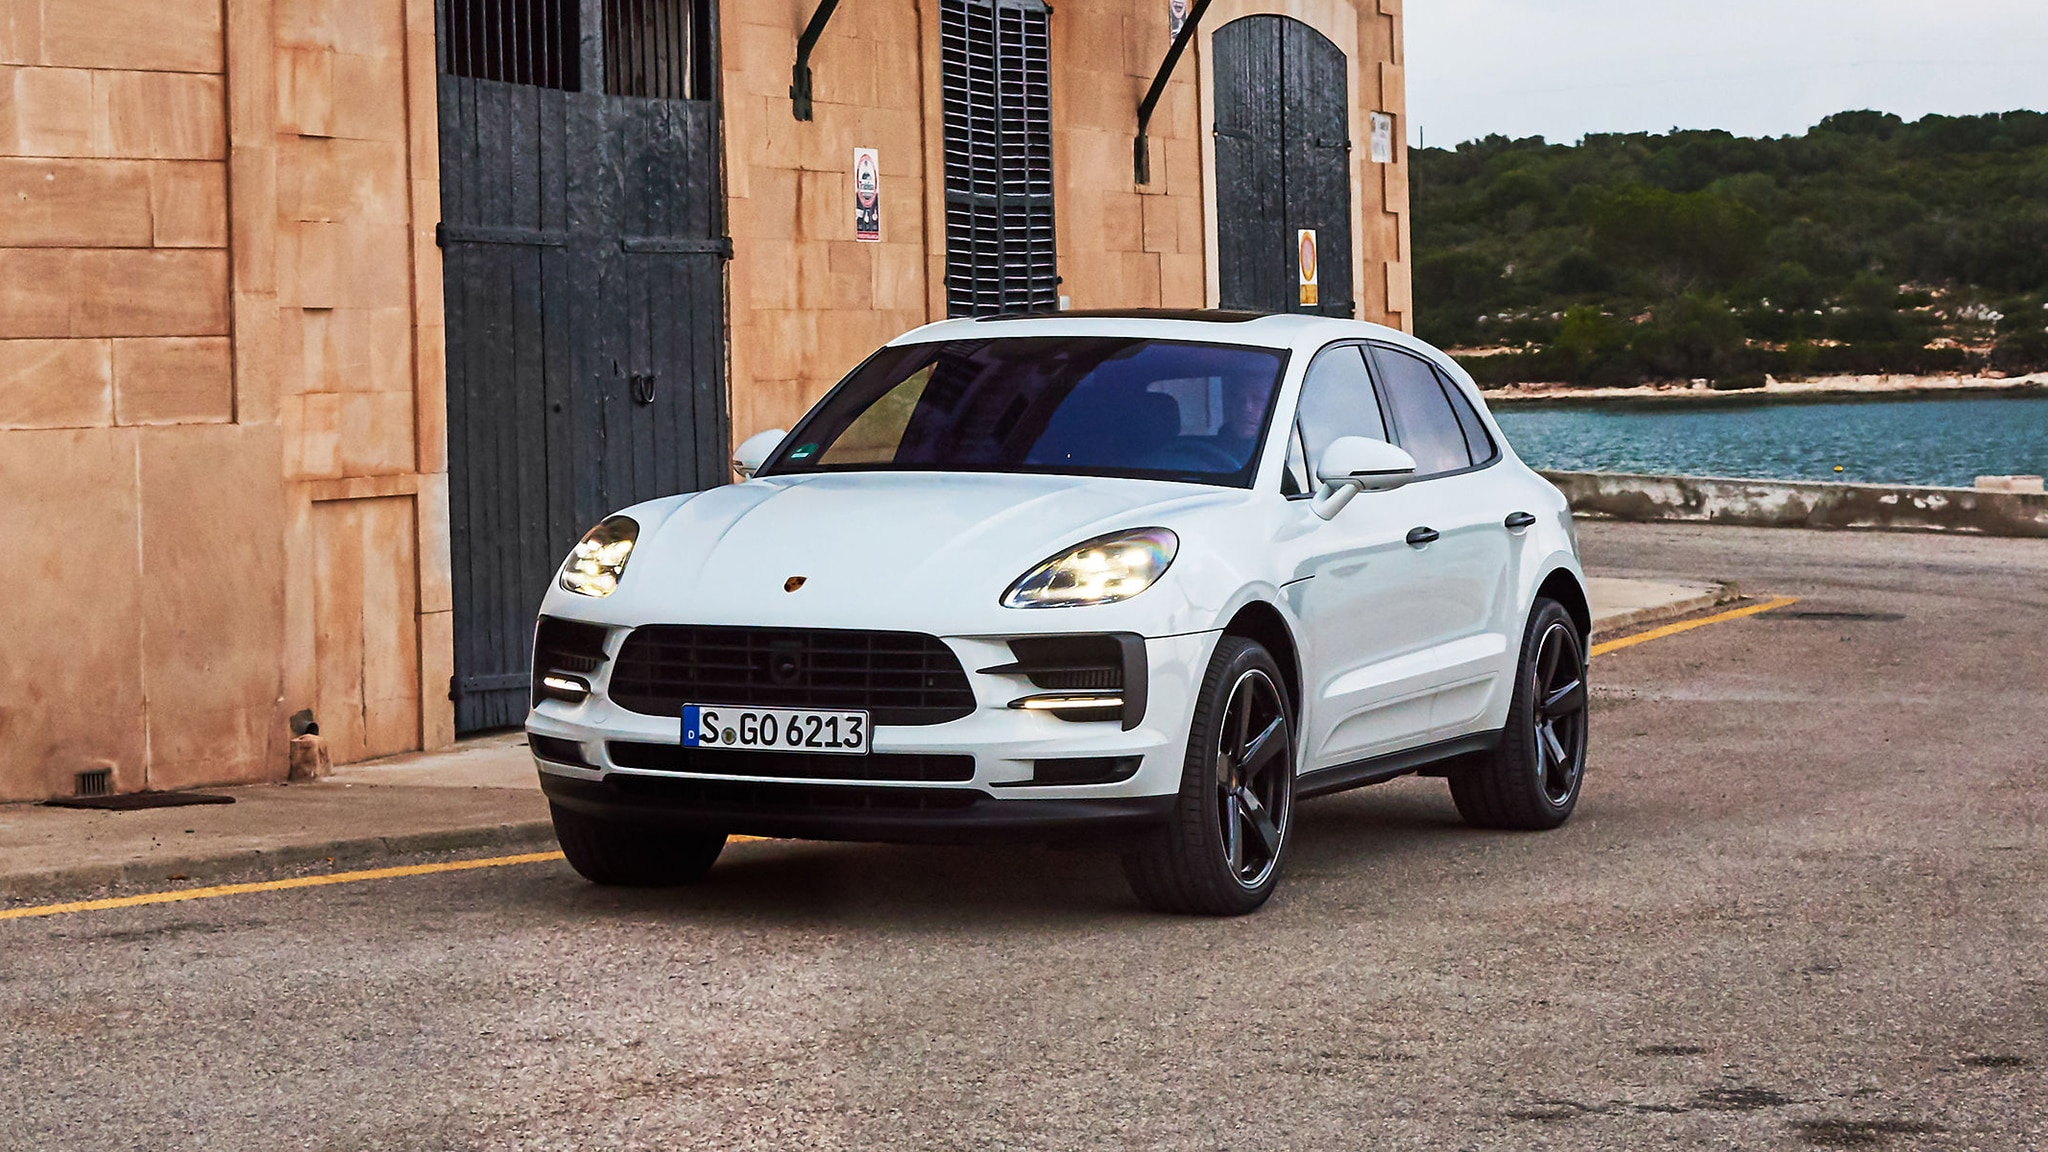 2019 Porsche Macan S First Drive: Better than Ever | Car ...